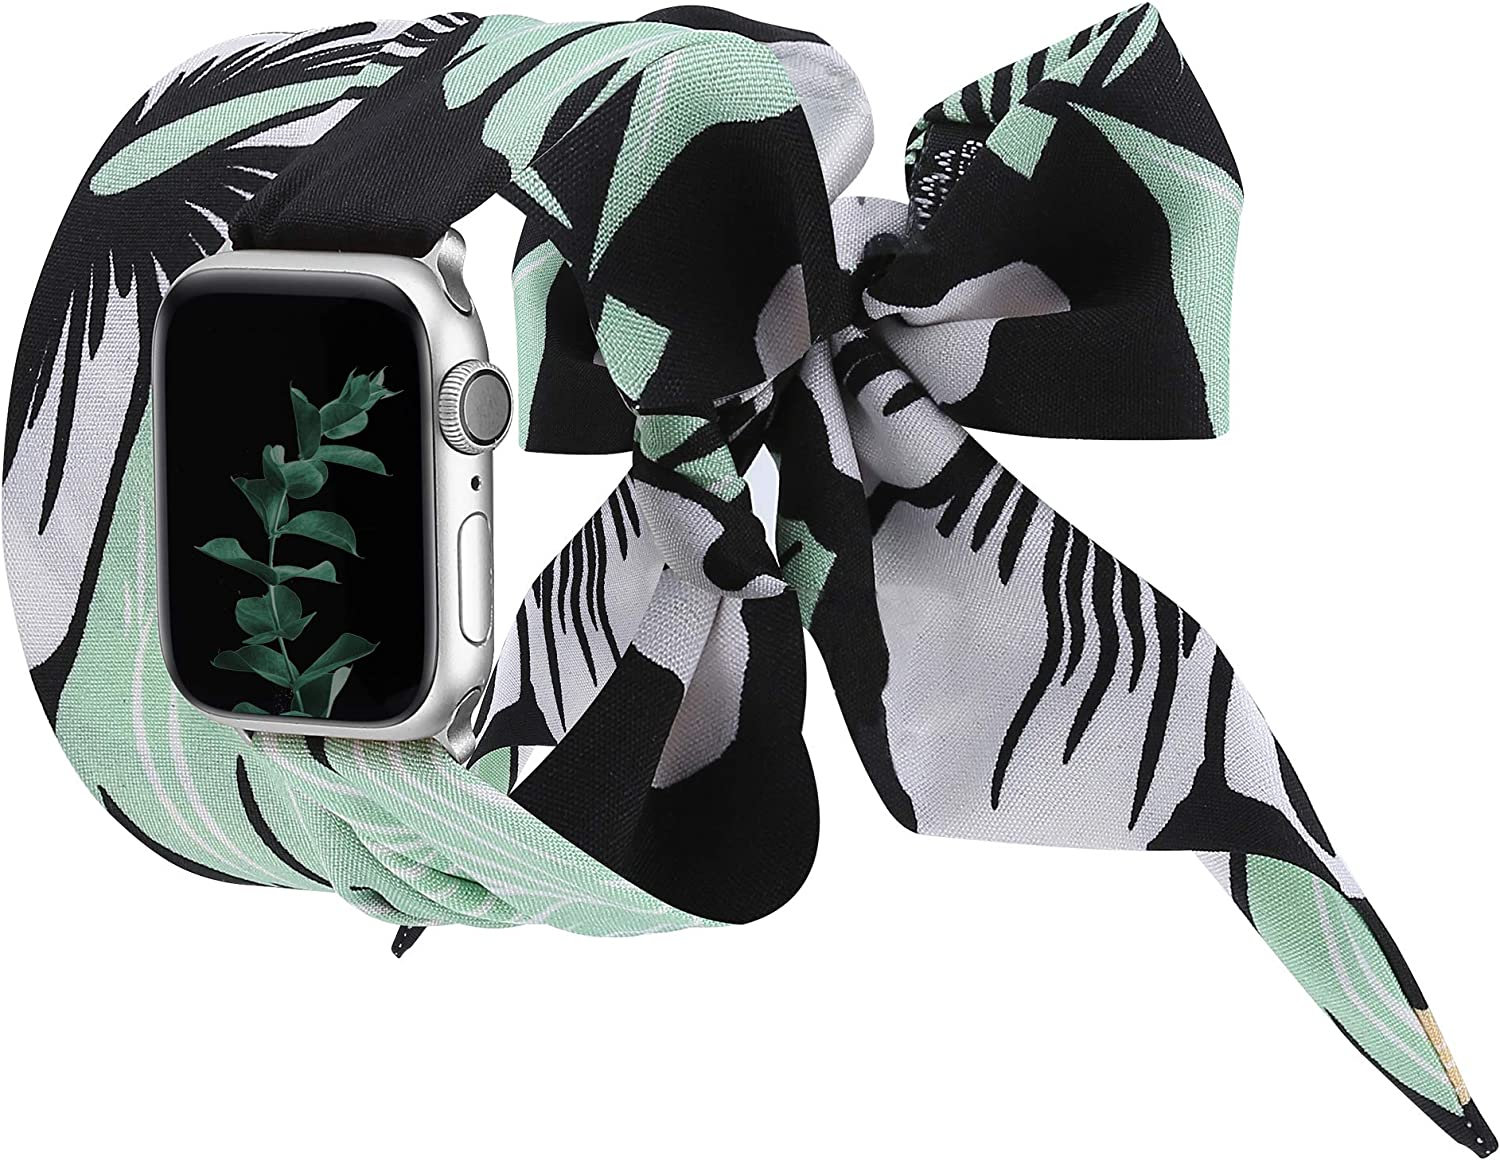 Wearlizer Compatible with Apple Watch Bands Scarf 38mm 40mm for iWatch Band Women Girls Fashion Scarf Replacement Wrist Strap for Apple Watch SE Series 6 5 4 3 2 1 - Green Floral